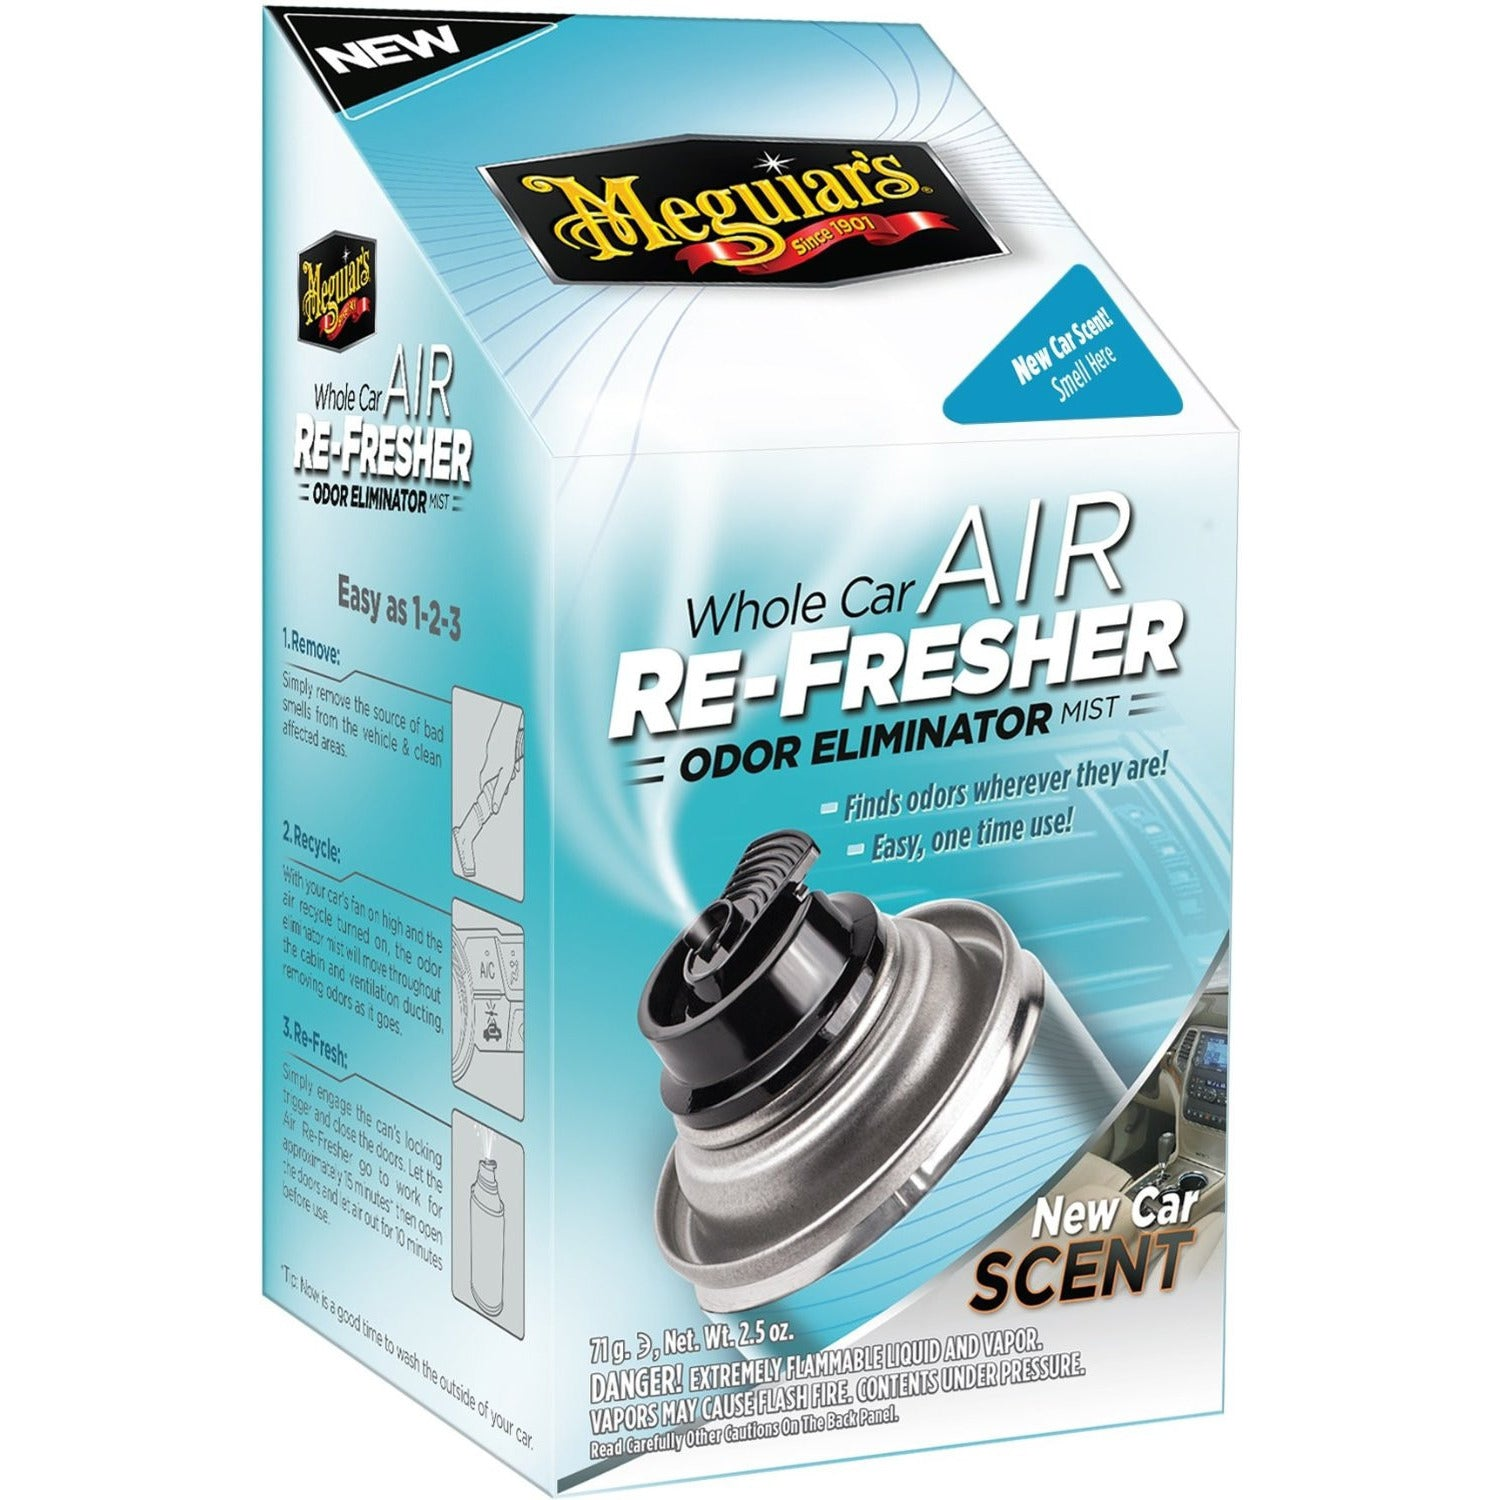 MEGUIAR'S AIR RE-FRESHNER New Car